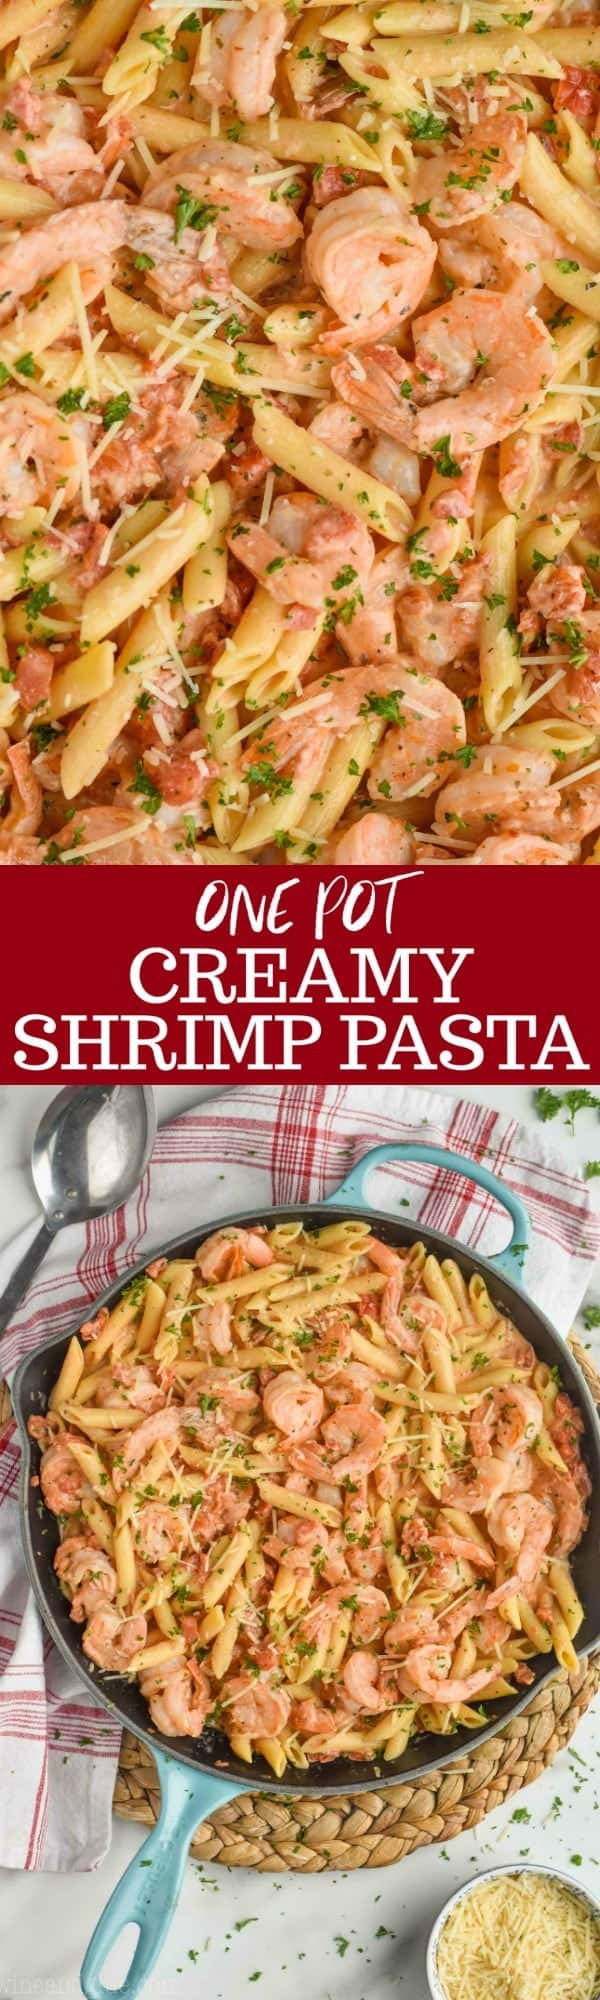 collage of one pot creamy shrimp pasta photos